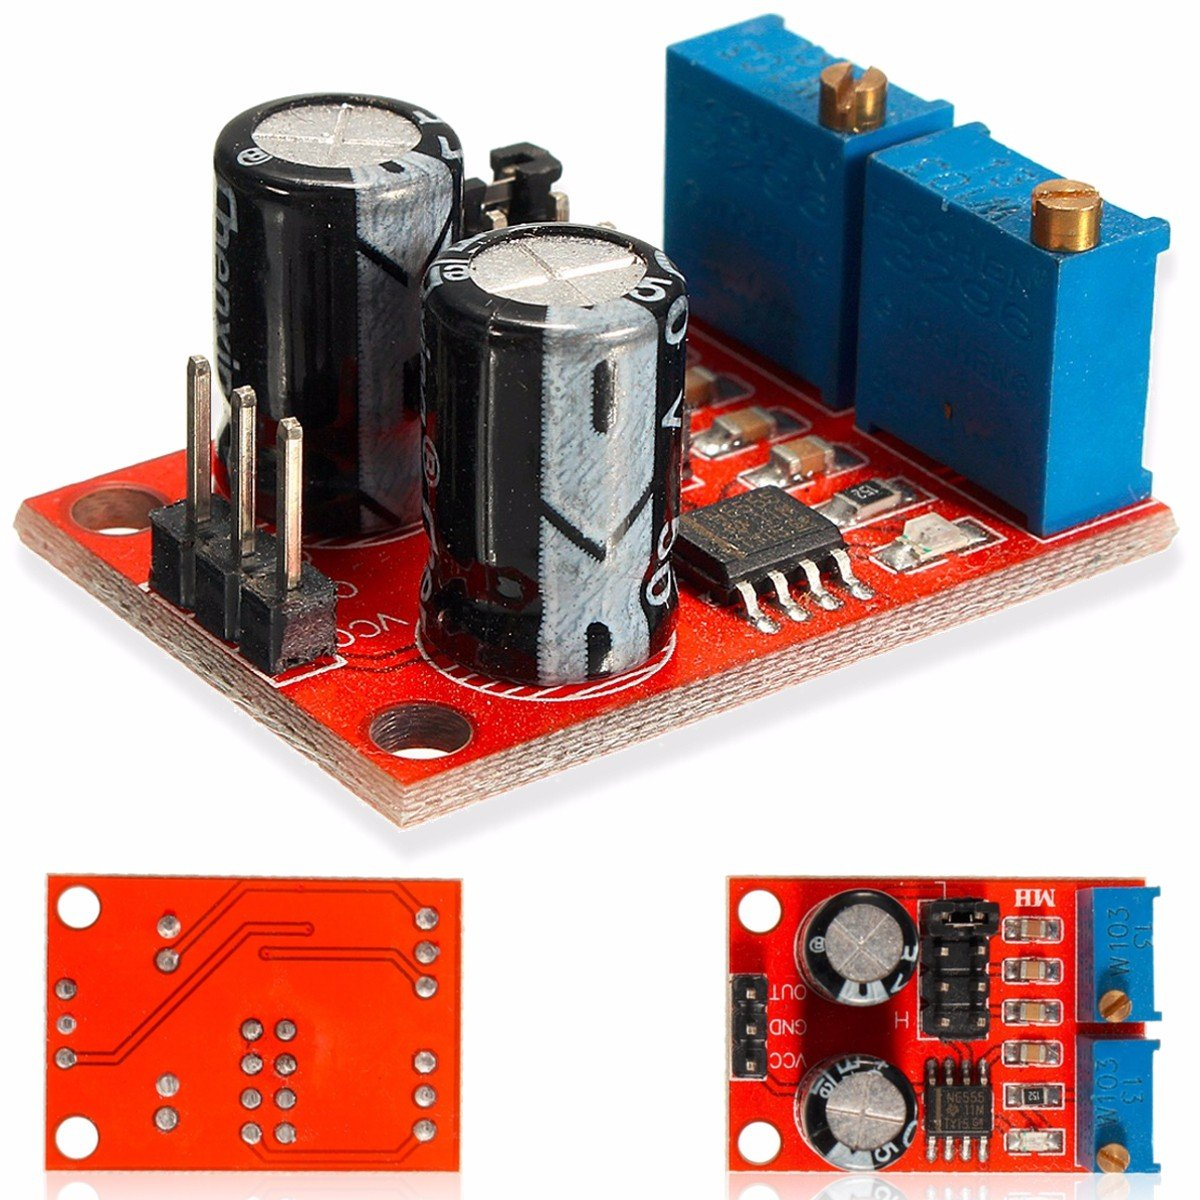 Wingoneer Ne555 5v 15v Dc Frequency Duty Cycle Adjustable Module Pulse Generator Circuit 555 Triangle Waveform Simple Square Wave Signal Industrial Scientific